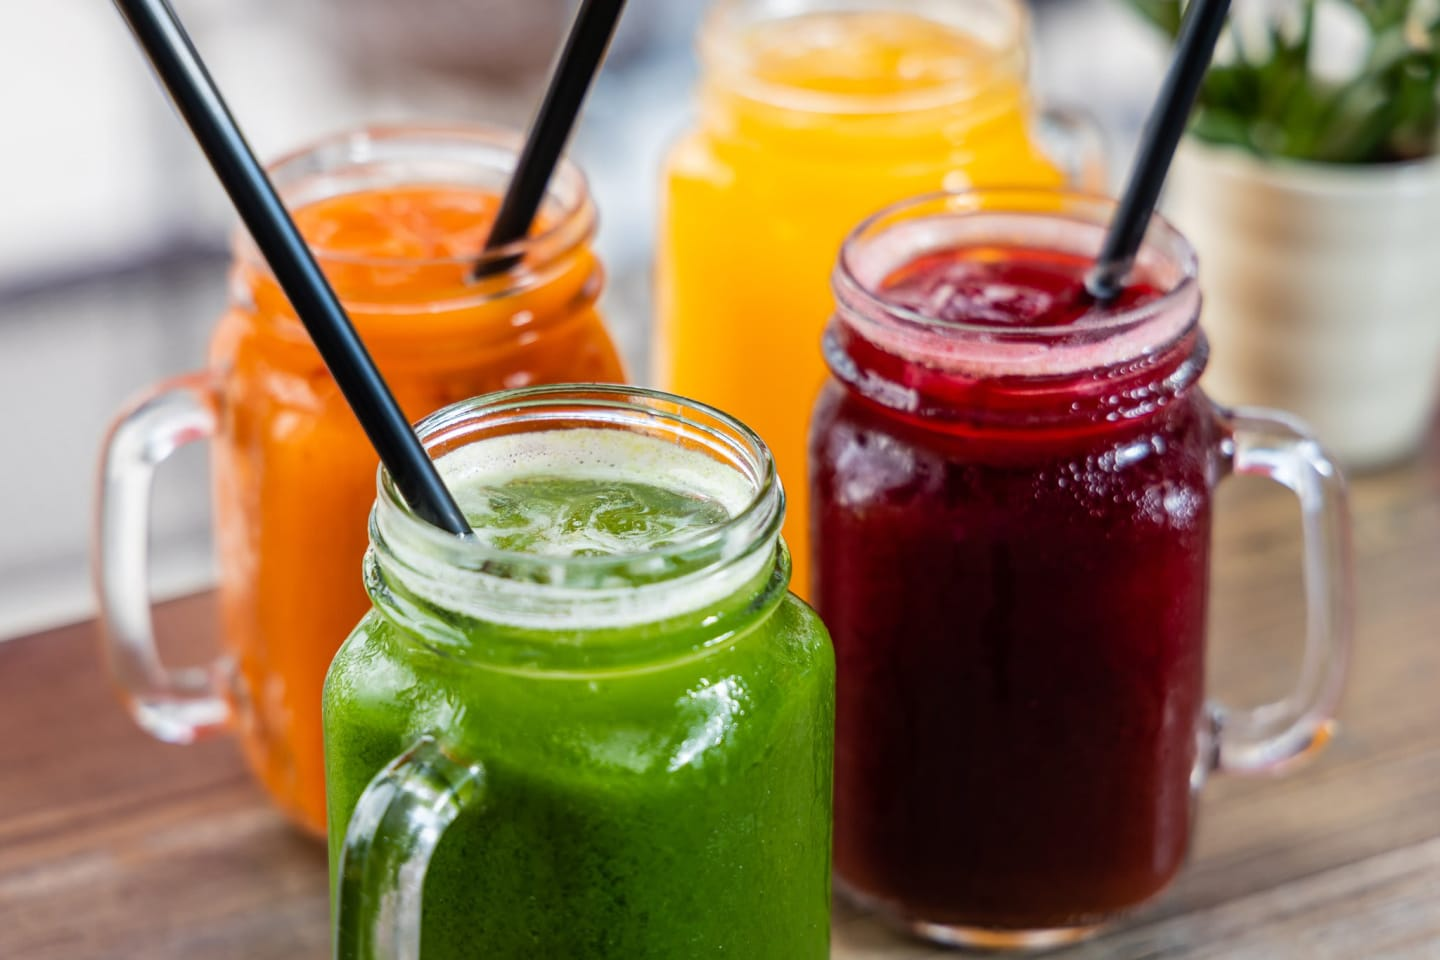 juices in jars